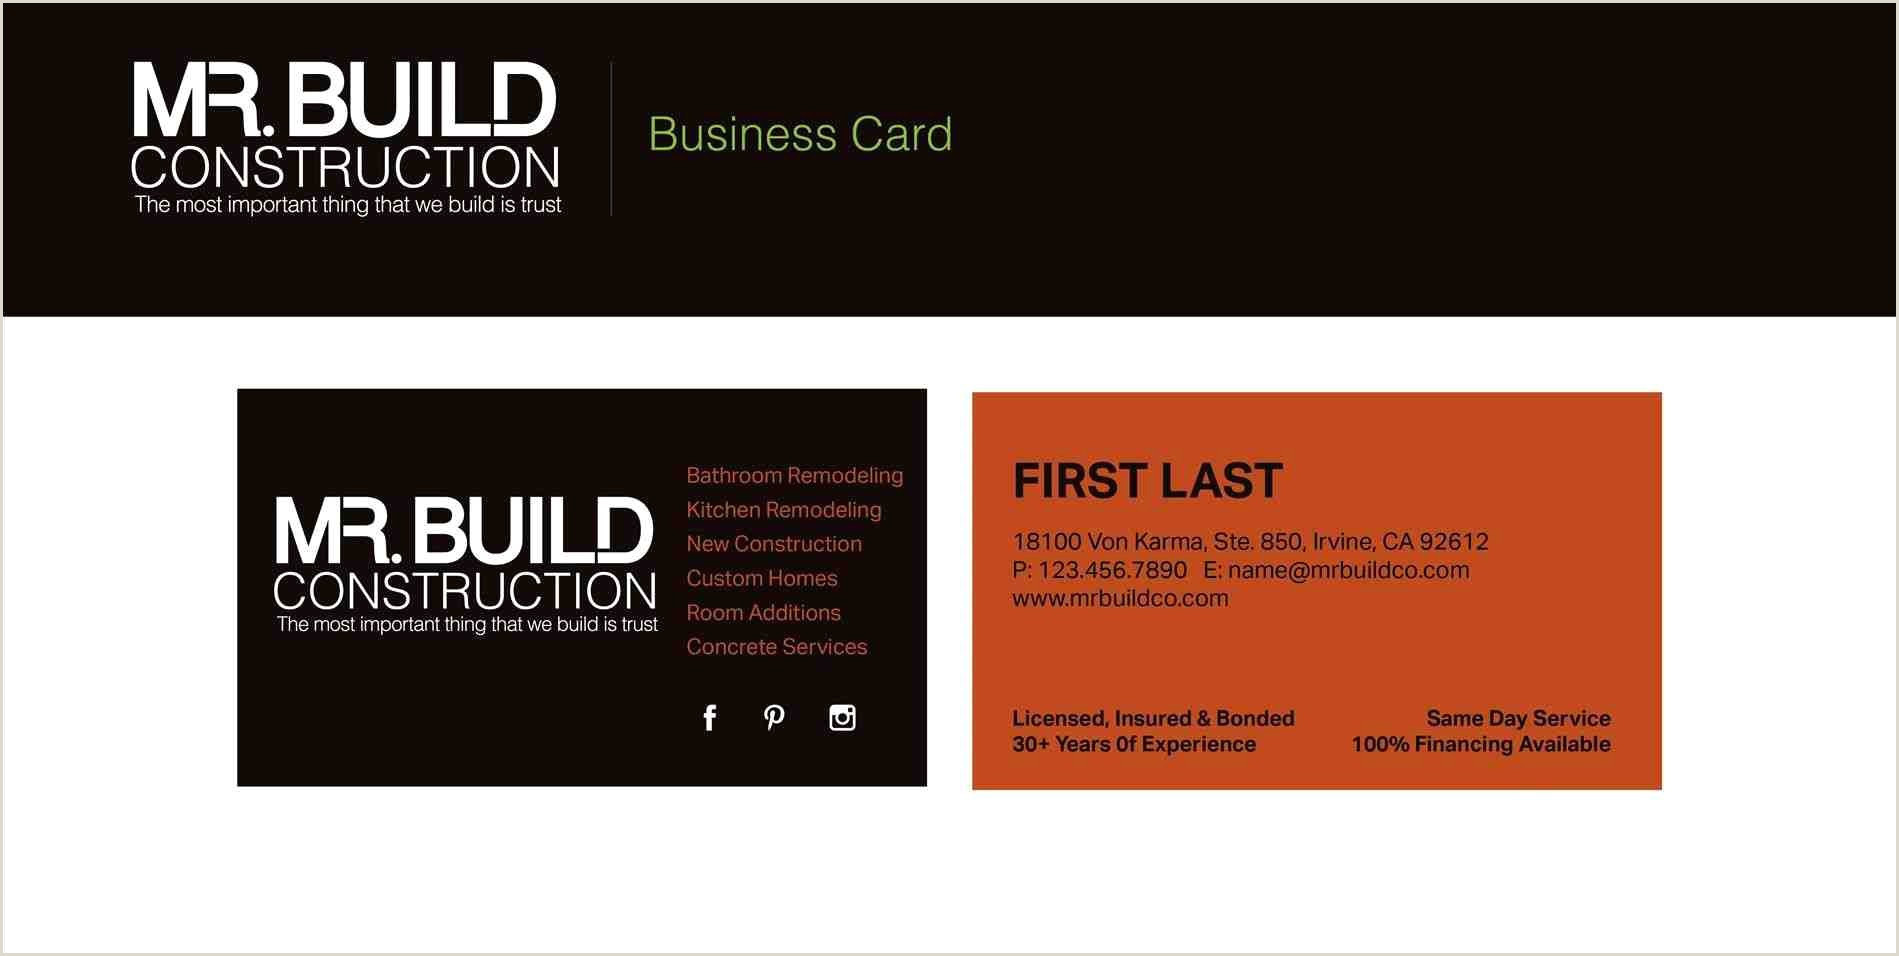 We Buy Houses Business Card Templates 14 Popular Hardwood Flooring Business Card Template